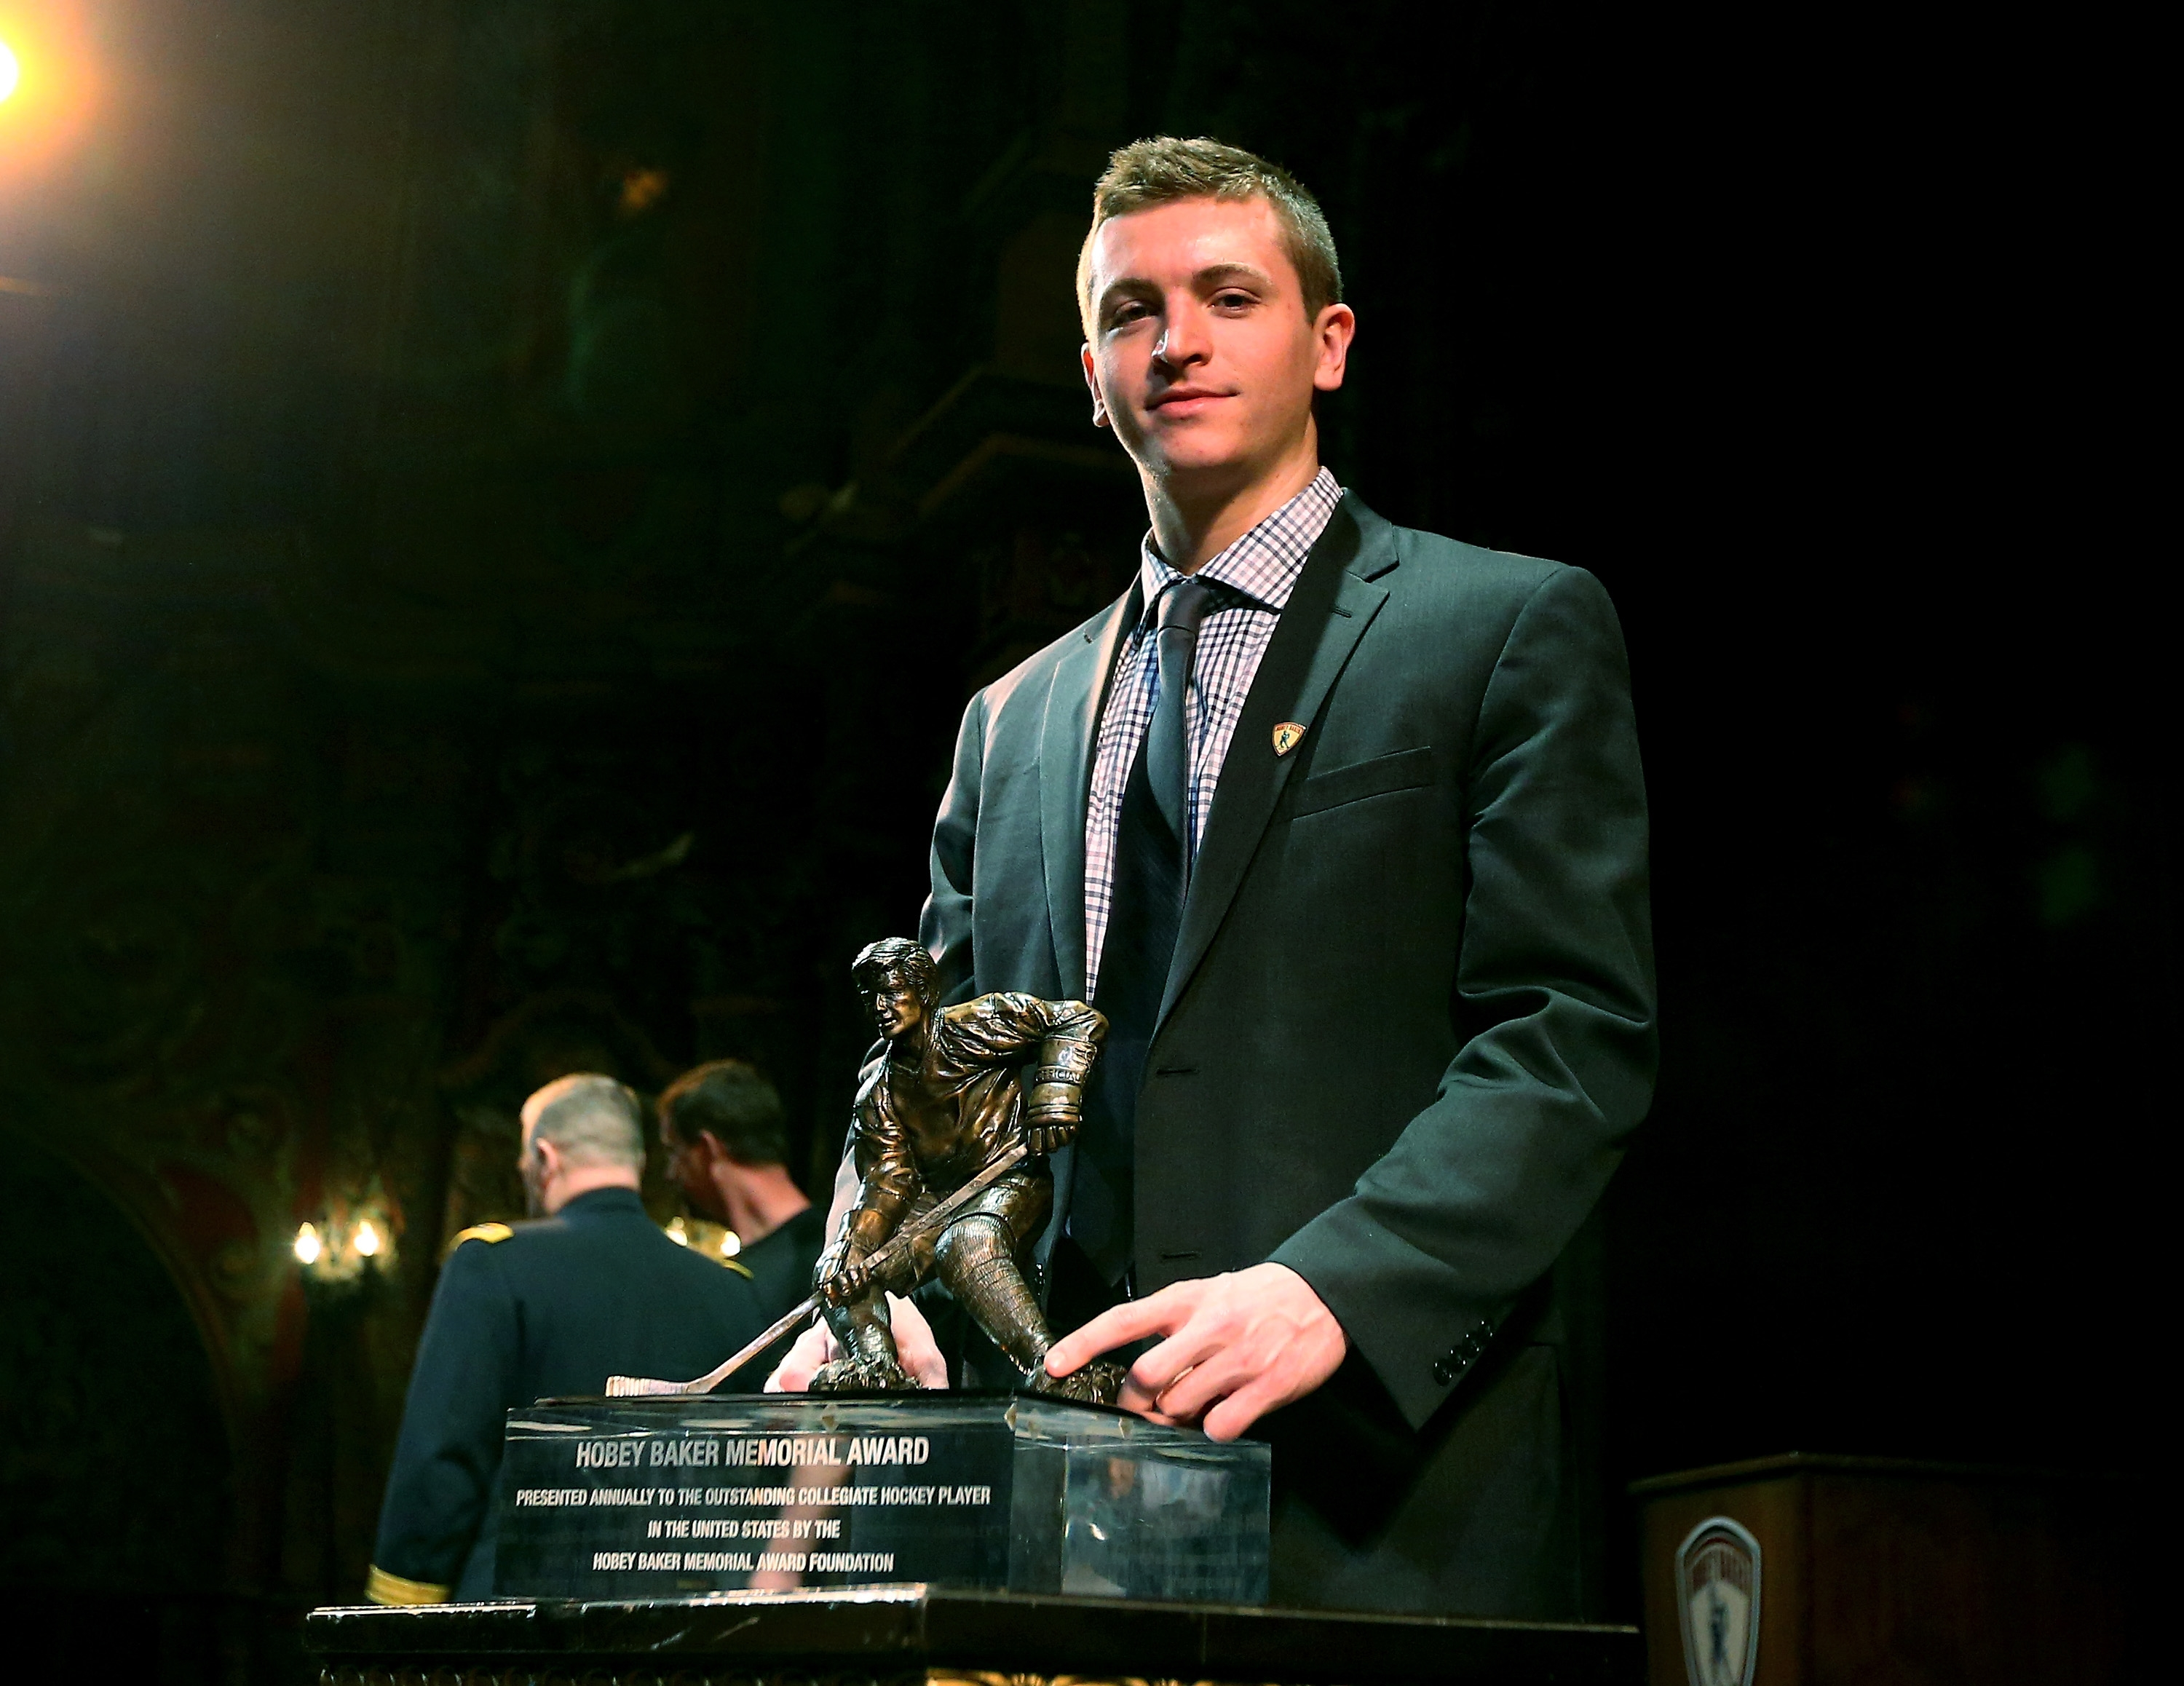 Jimmy Vesey of Harvard won the Hobey Baker Award as college hockey's best player in 2016. Jack Eichel of the Sabres won it in 2015.